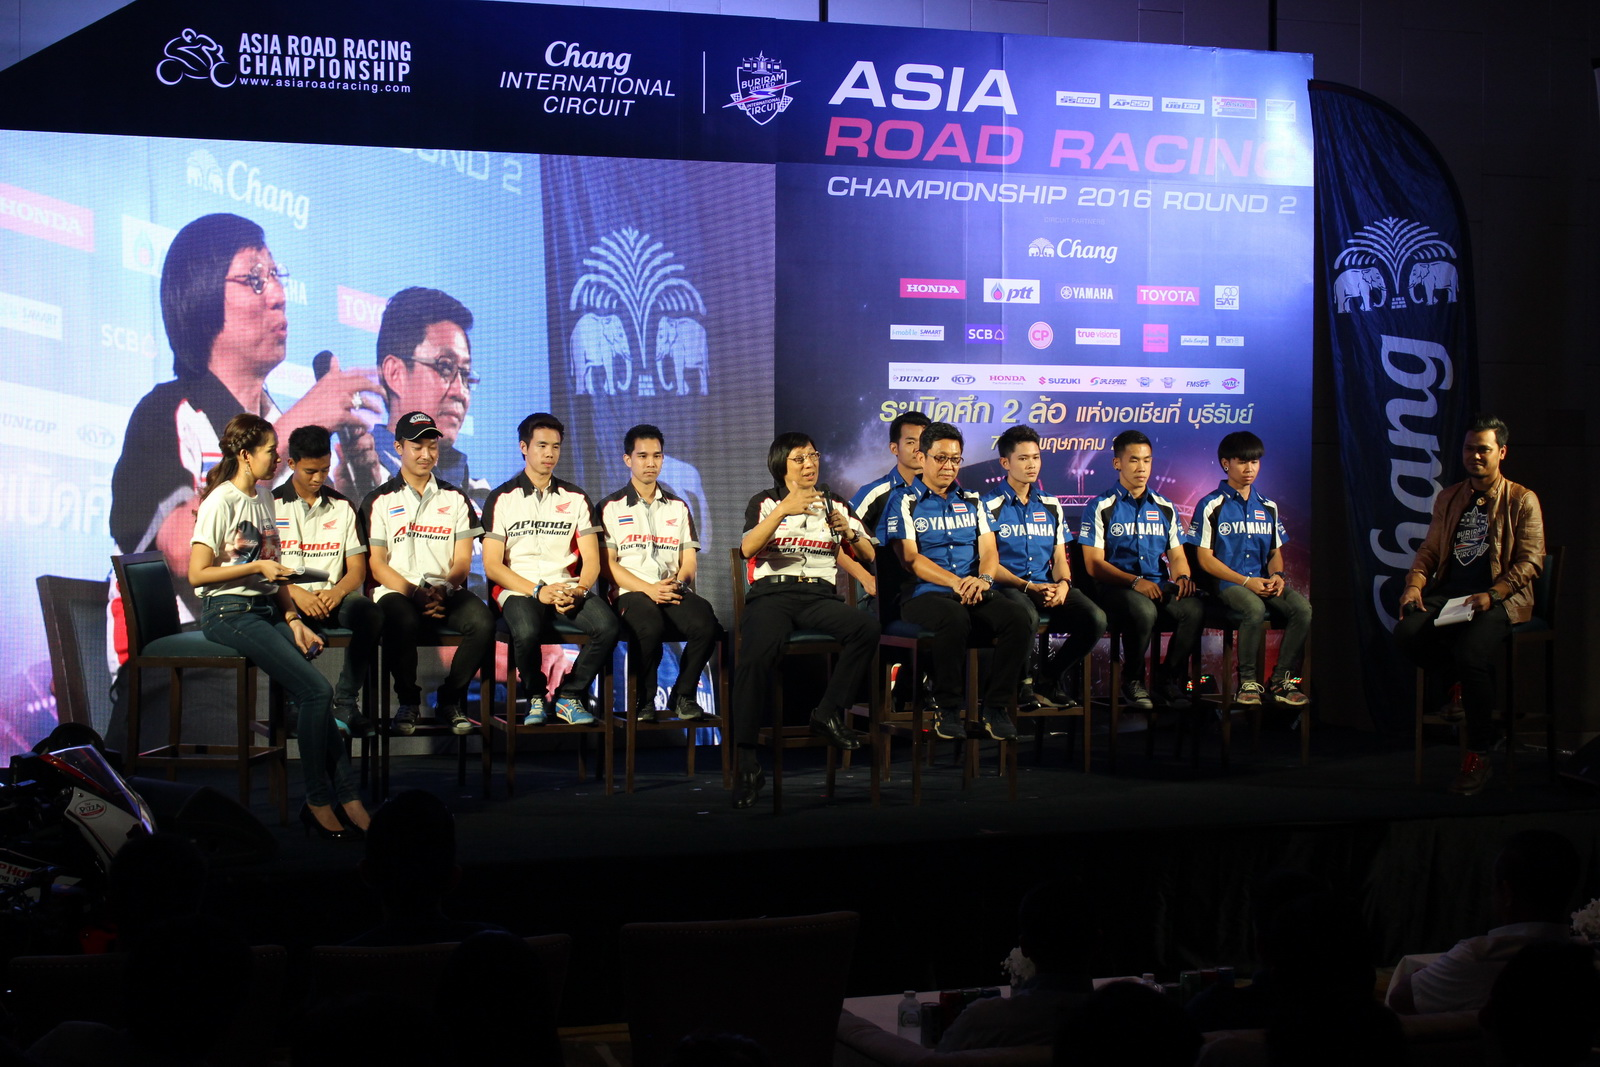 asia_road_race_press_11